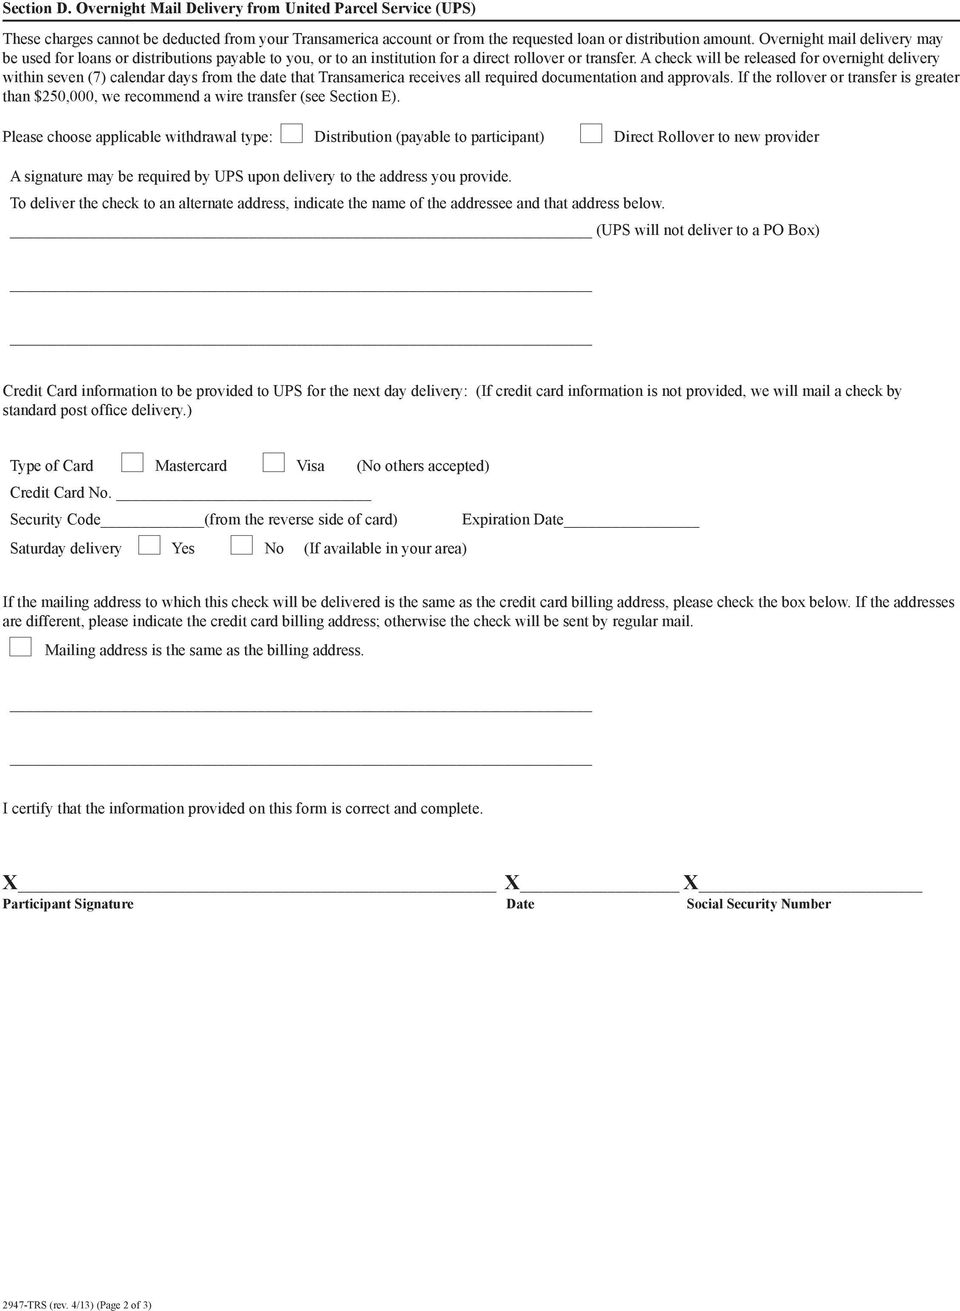 Hardship Withdrawal Request Pdf